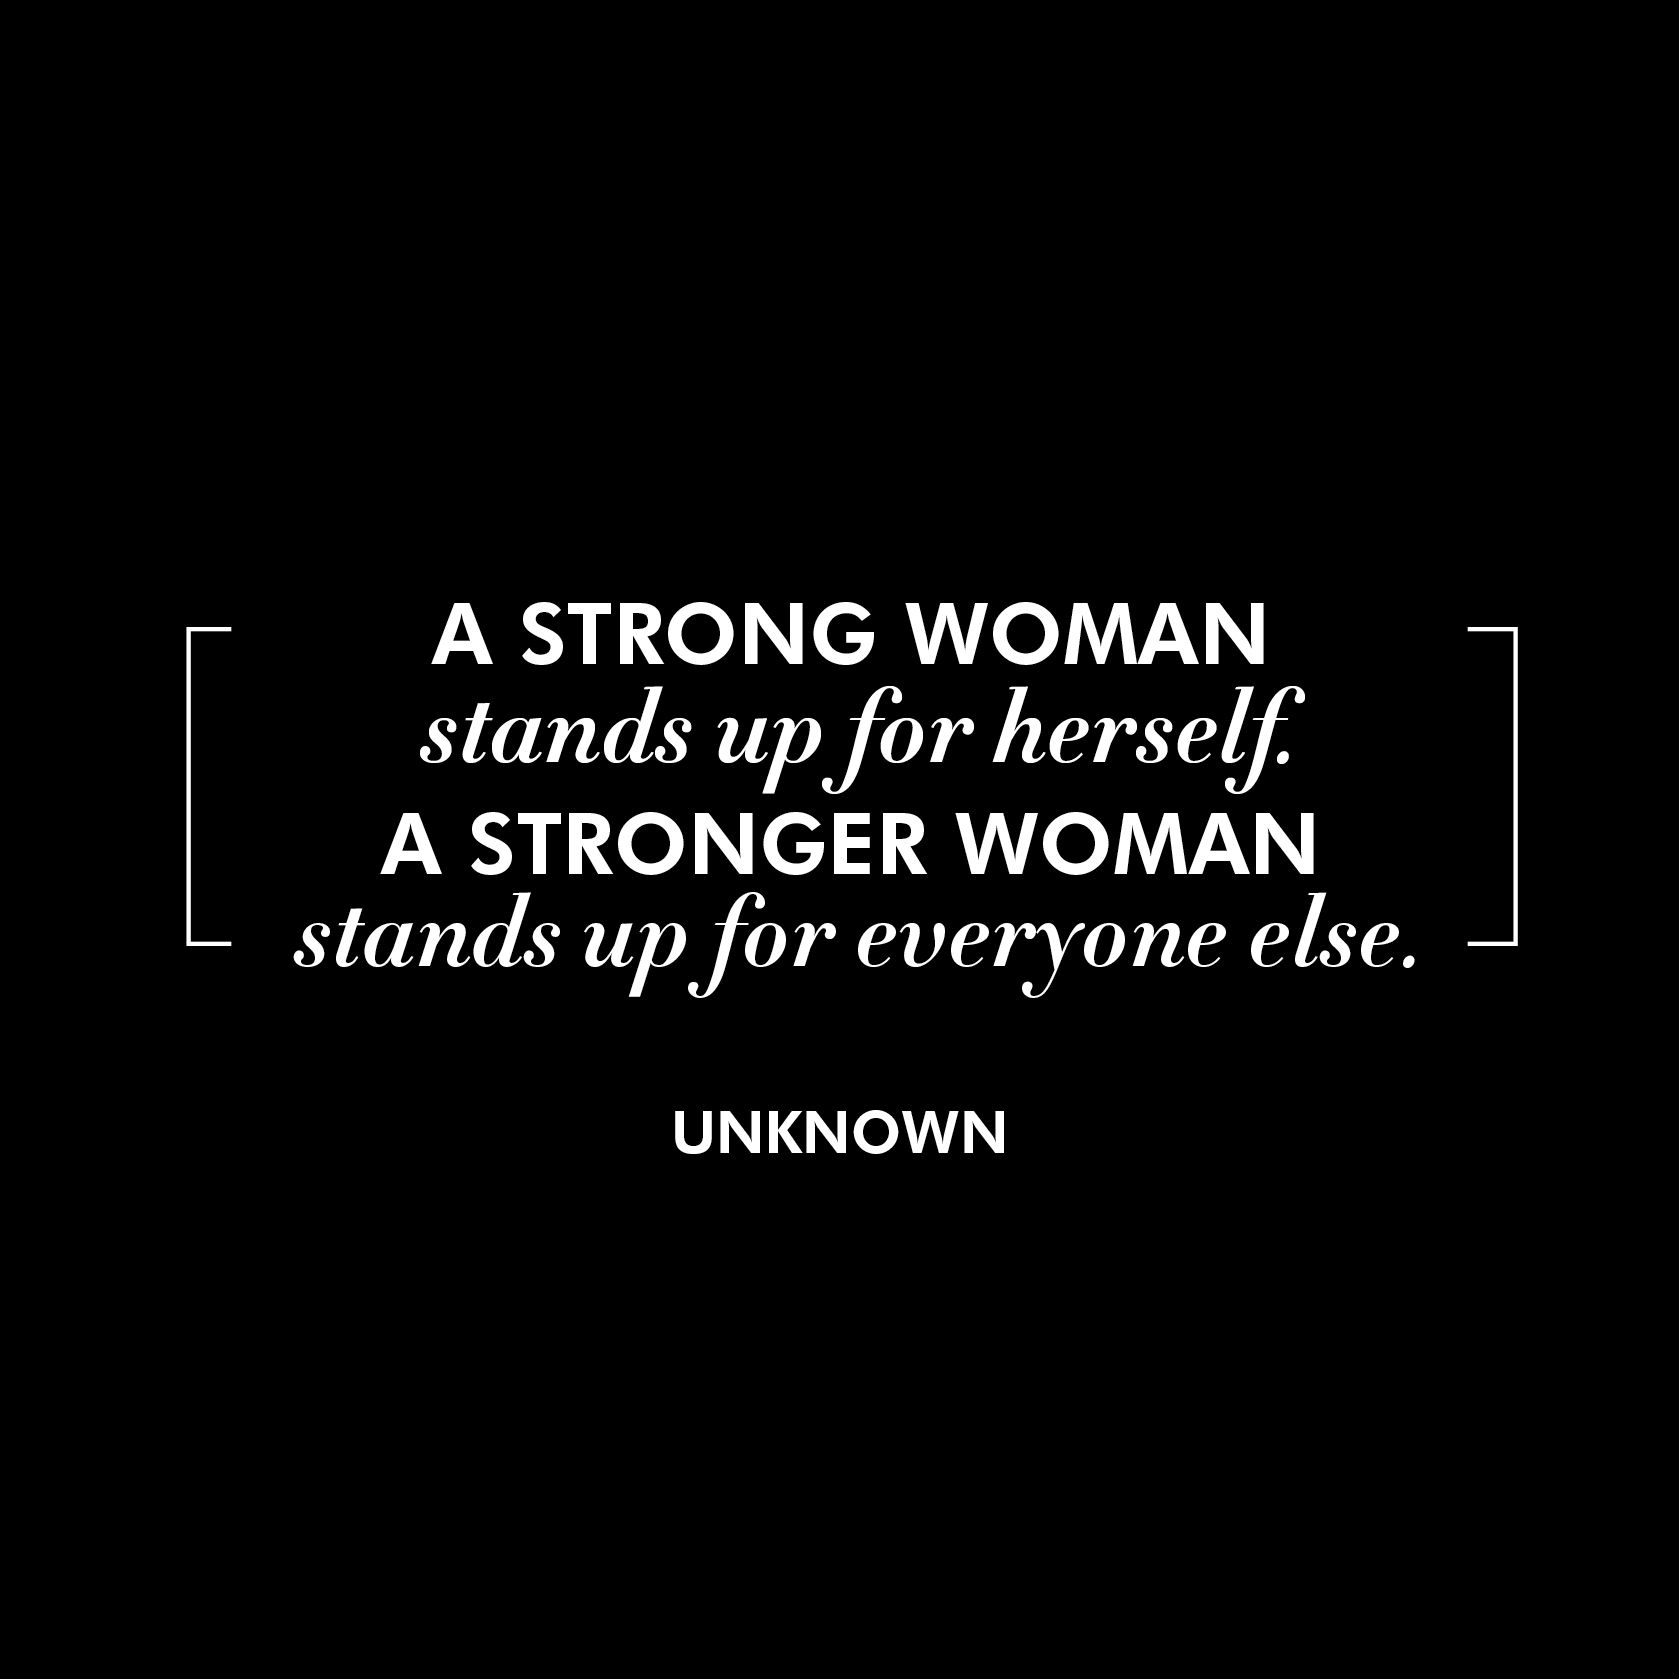 A Strong Woman Stands Up For Herself A Stronger Woman Stands Up For